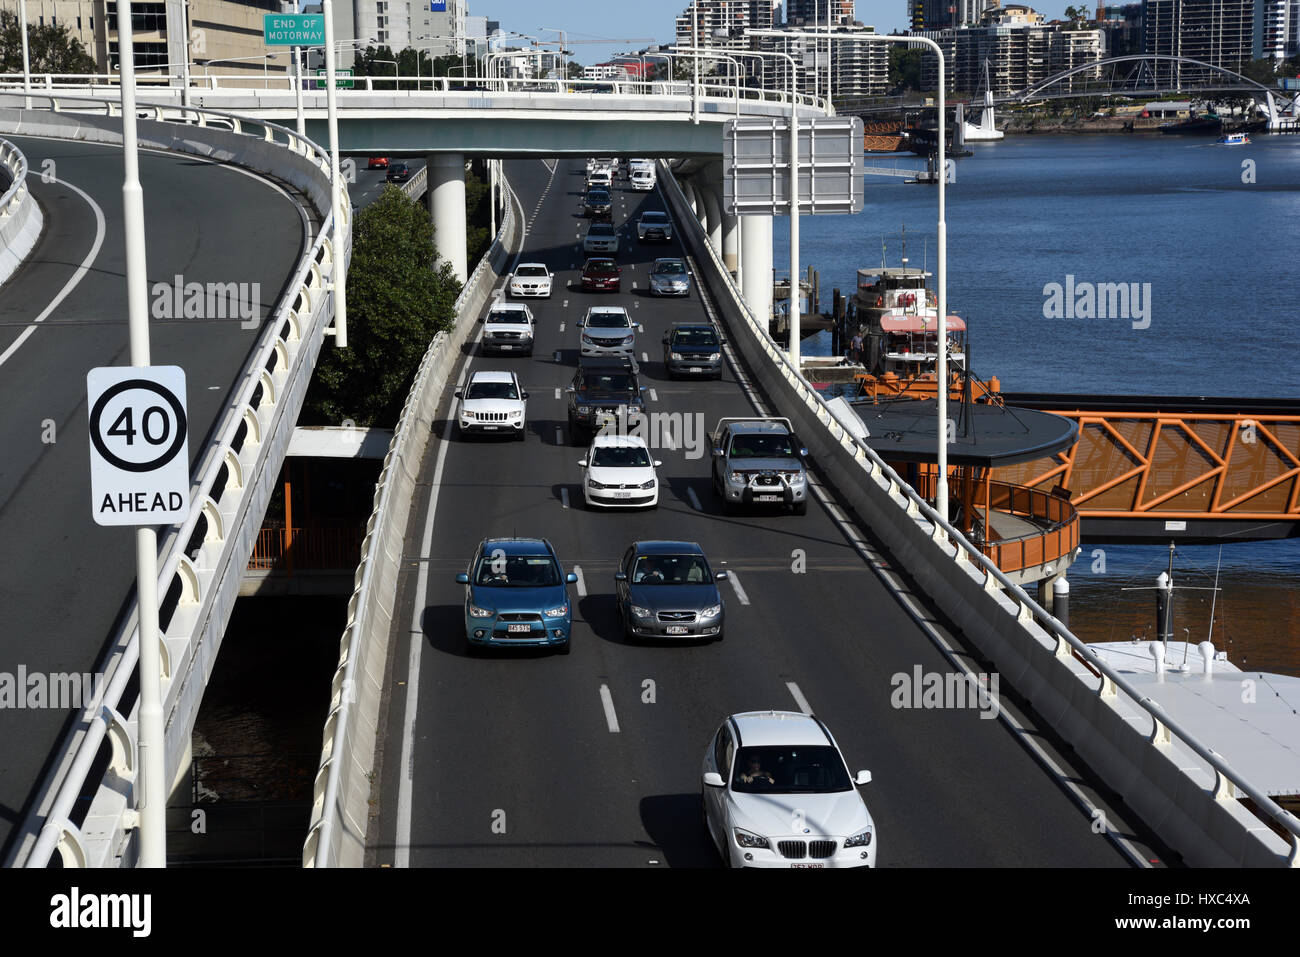 Brisbane, Australia: Traffic on the Riverside Expressway on the banks of the Brisbane River. - Stock Image